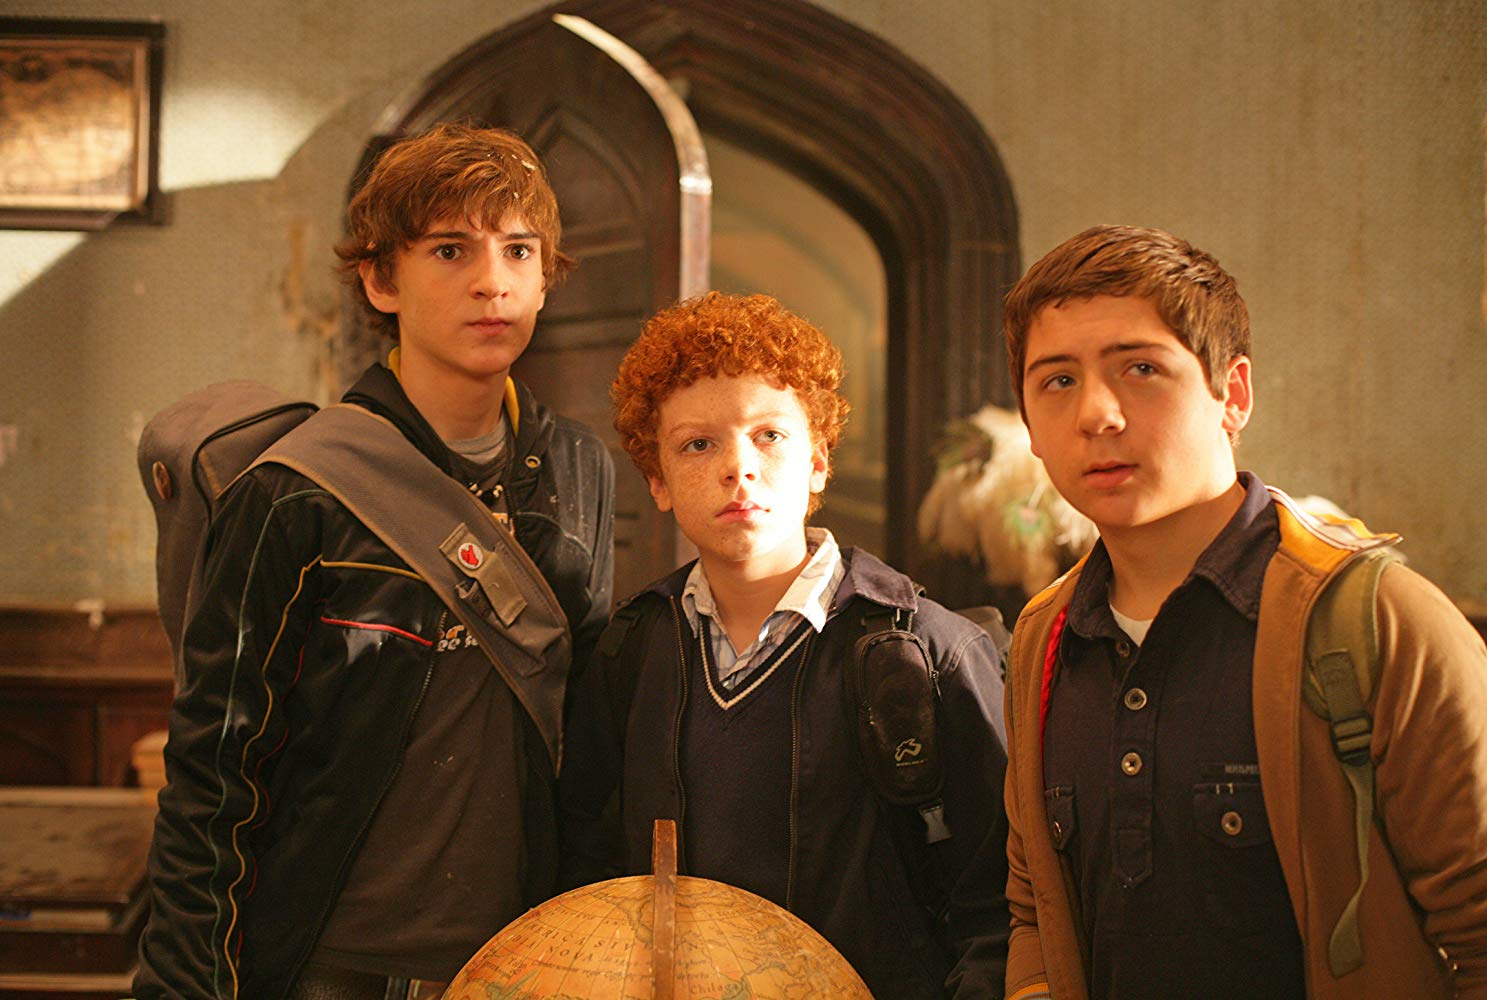 The Three Investigators - Jupiter Jones (Chancellor Miller), Bob Andrews (Cameron Monaghan) and Pete Crenshaw (Nick Price) in The Three Investigators in the Secret of Terror Castle (2009)